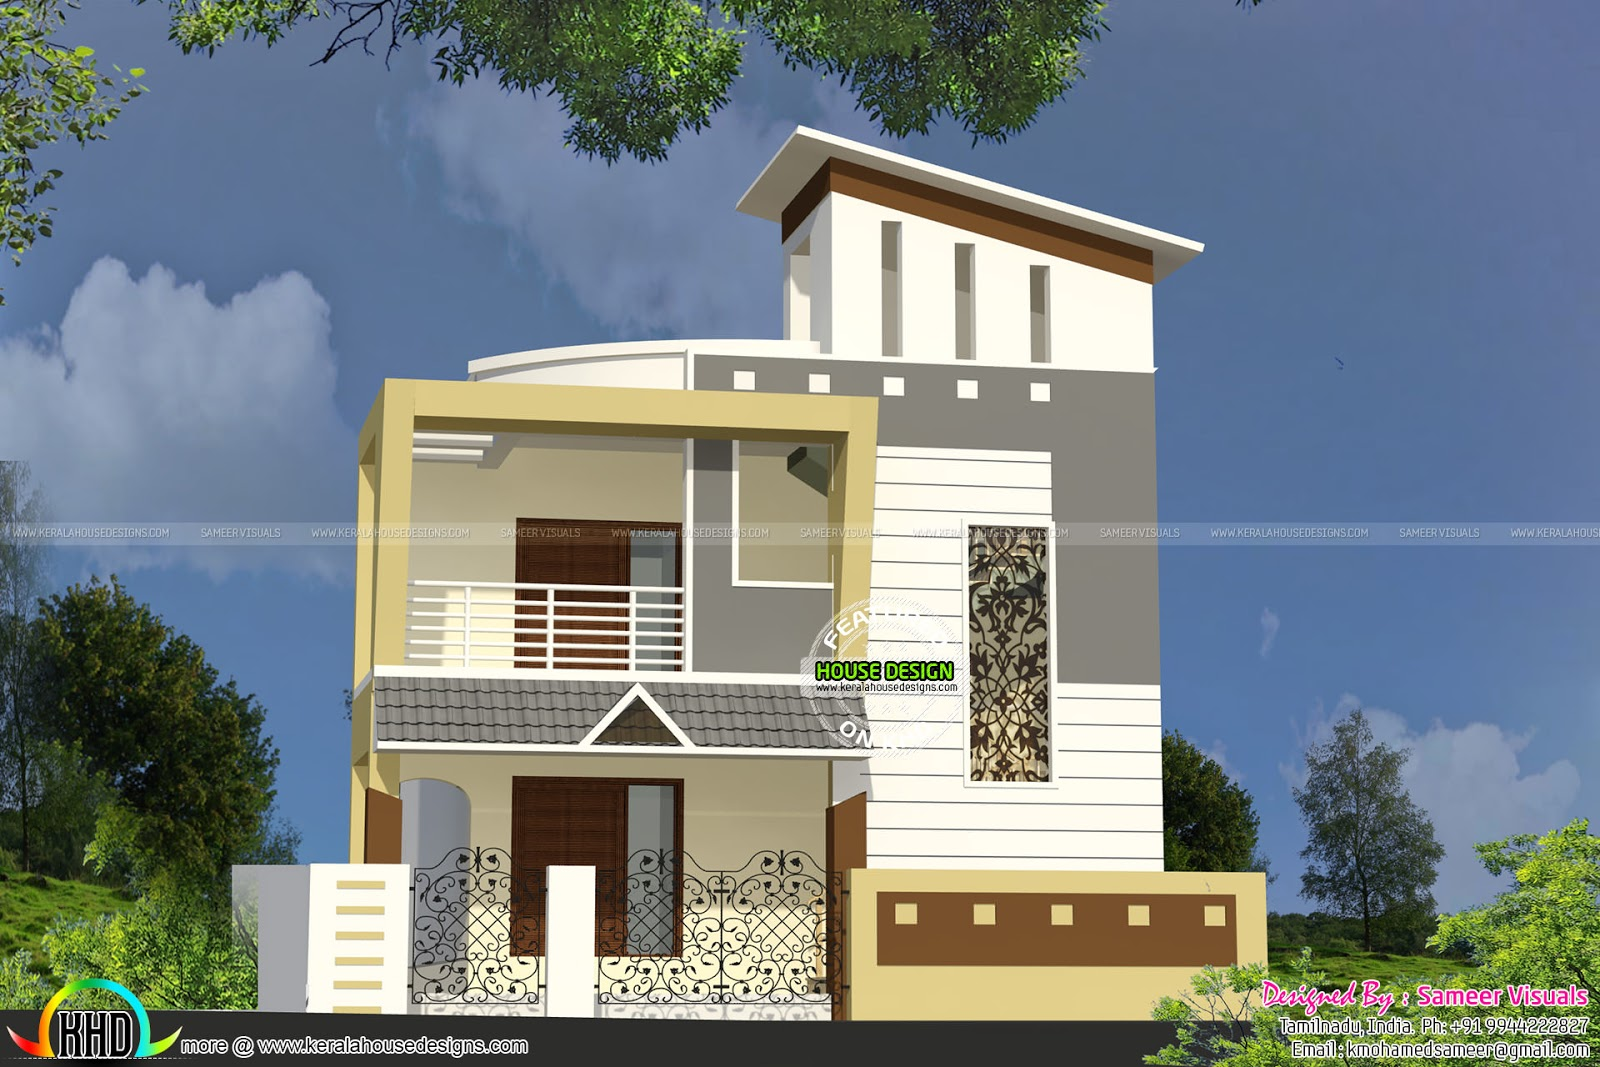 Double floor small home kerala home design and floor plans for Small frontage house designs